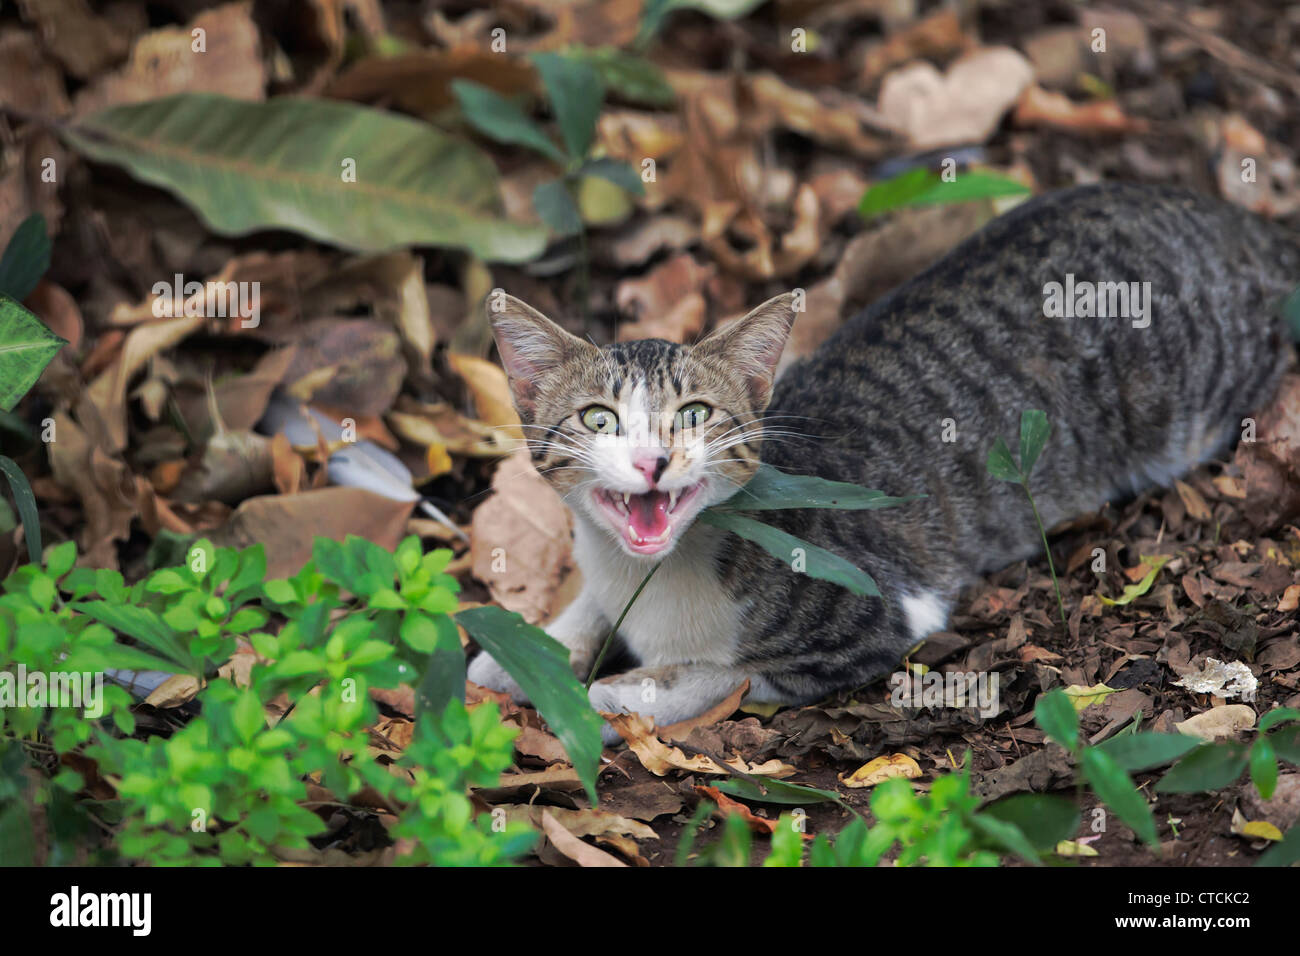 A domestic cat looking angrily at the camera . - Stock Image